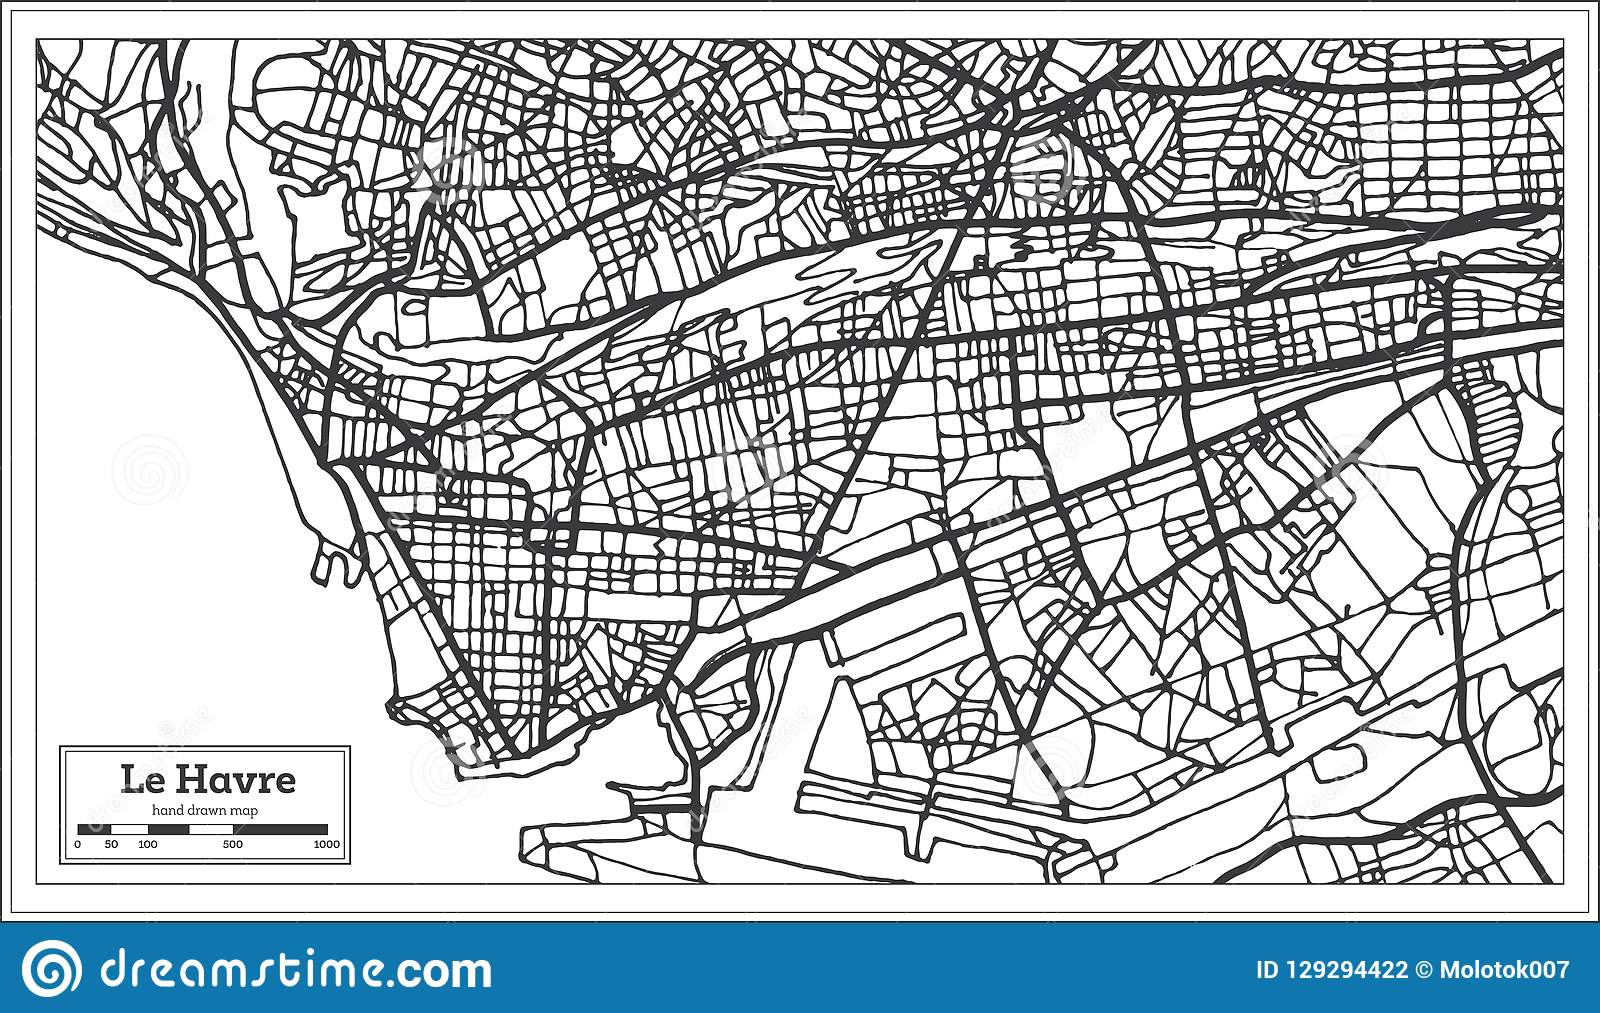 Le Havre France City Map In Retro Style Outline Map Stock Vector